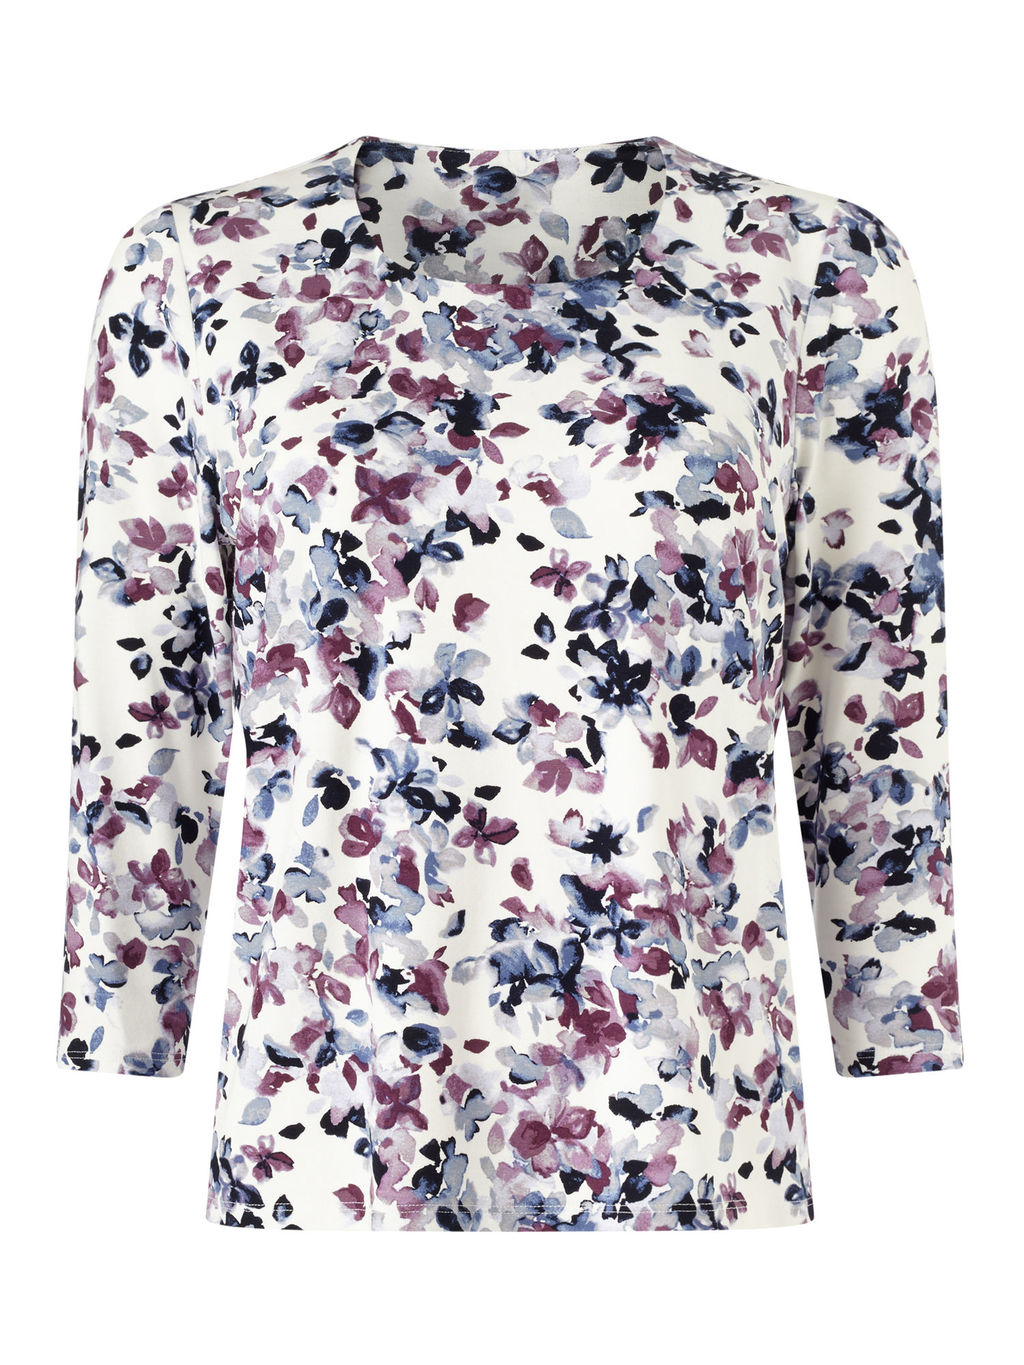 Mini Watercolour Floral Top - neckline: round neck; predominant colour: ivory/cream; secondary colour: purple; occasions: casual, creative work; length: standard; style: top; fibres: viscose/rayon - stretch; fit: body skimming; sleeve length: 3/4 length; sleeve style: standard; pattern type: fabric; pattern size: standard; pattern: florals; texture group: jersey - stretchy/drapey; multicoloured: multicoloured; season: s/s 2016; wardrobe: highlight